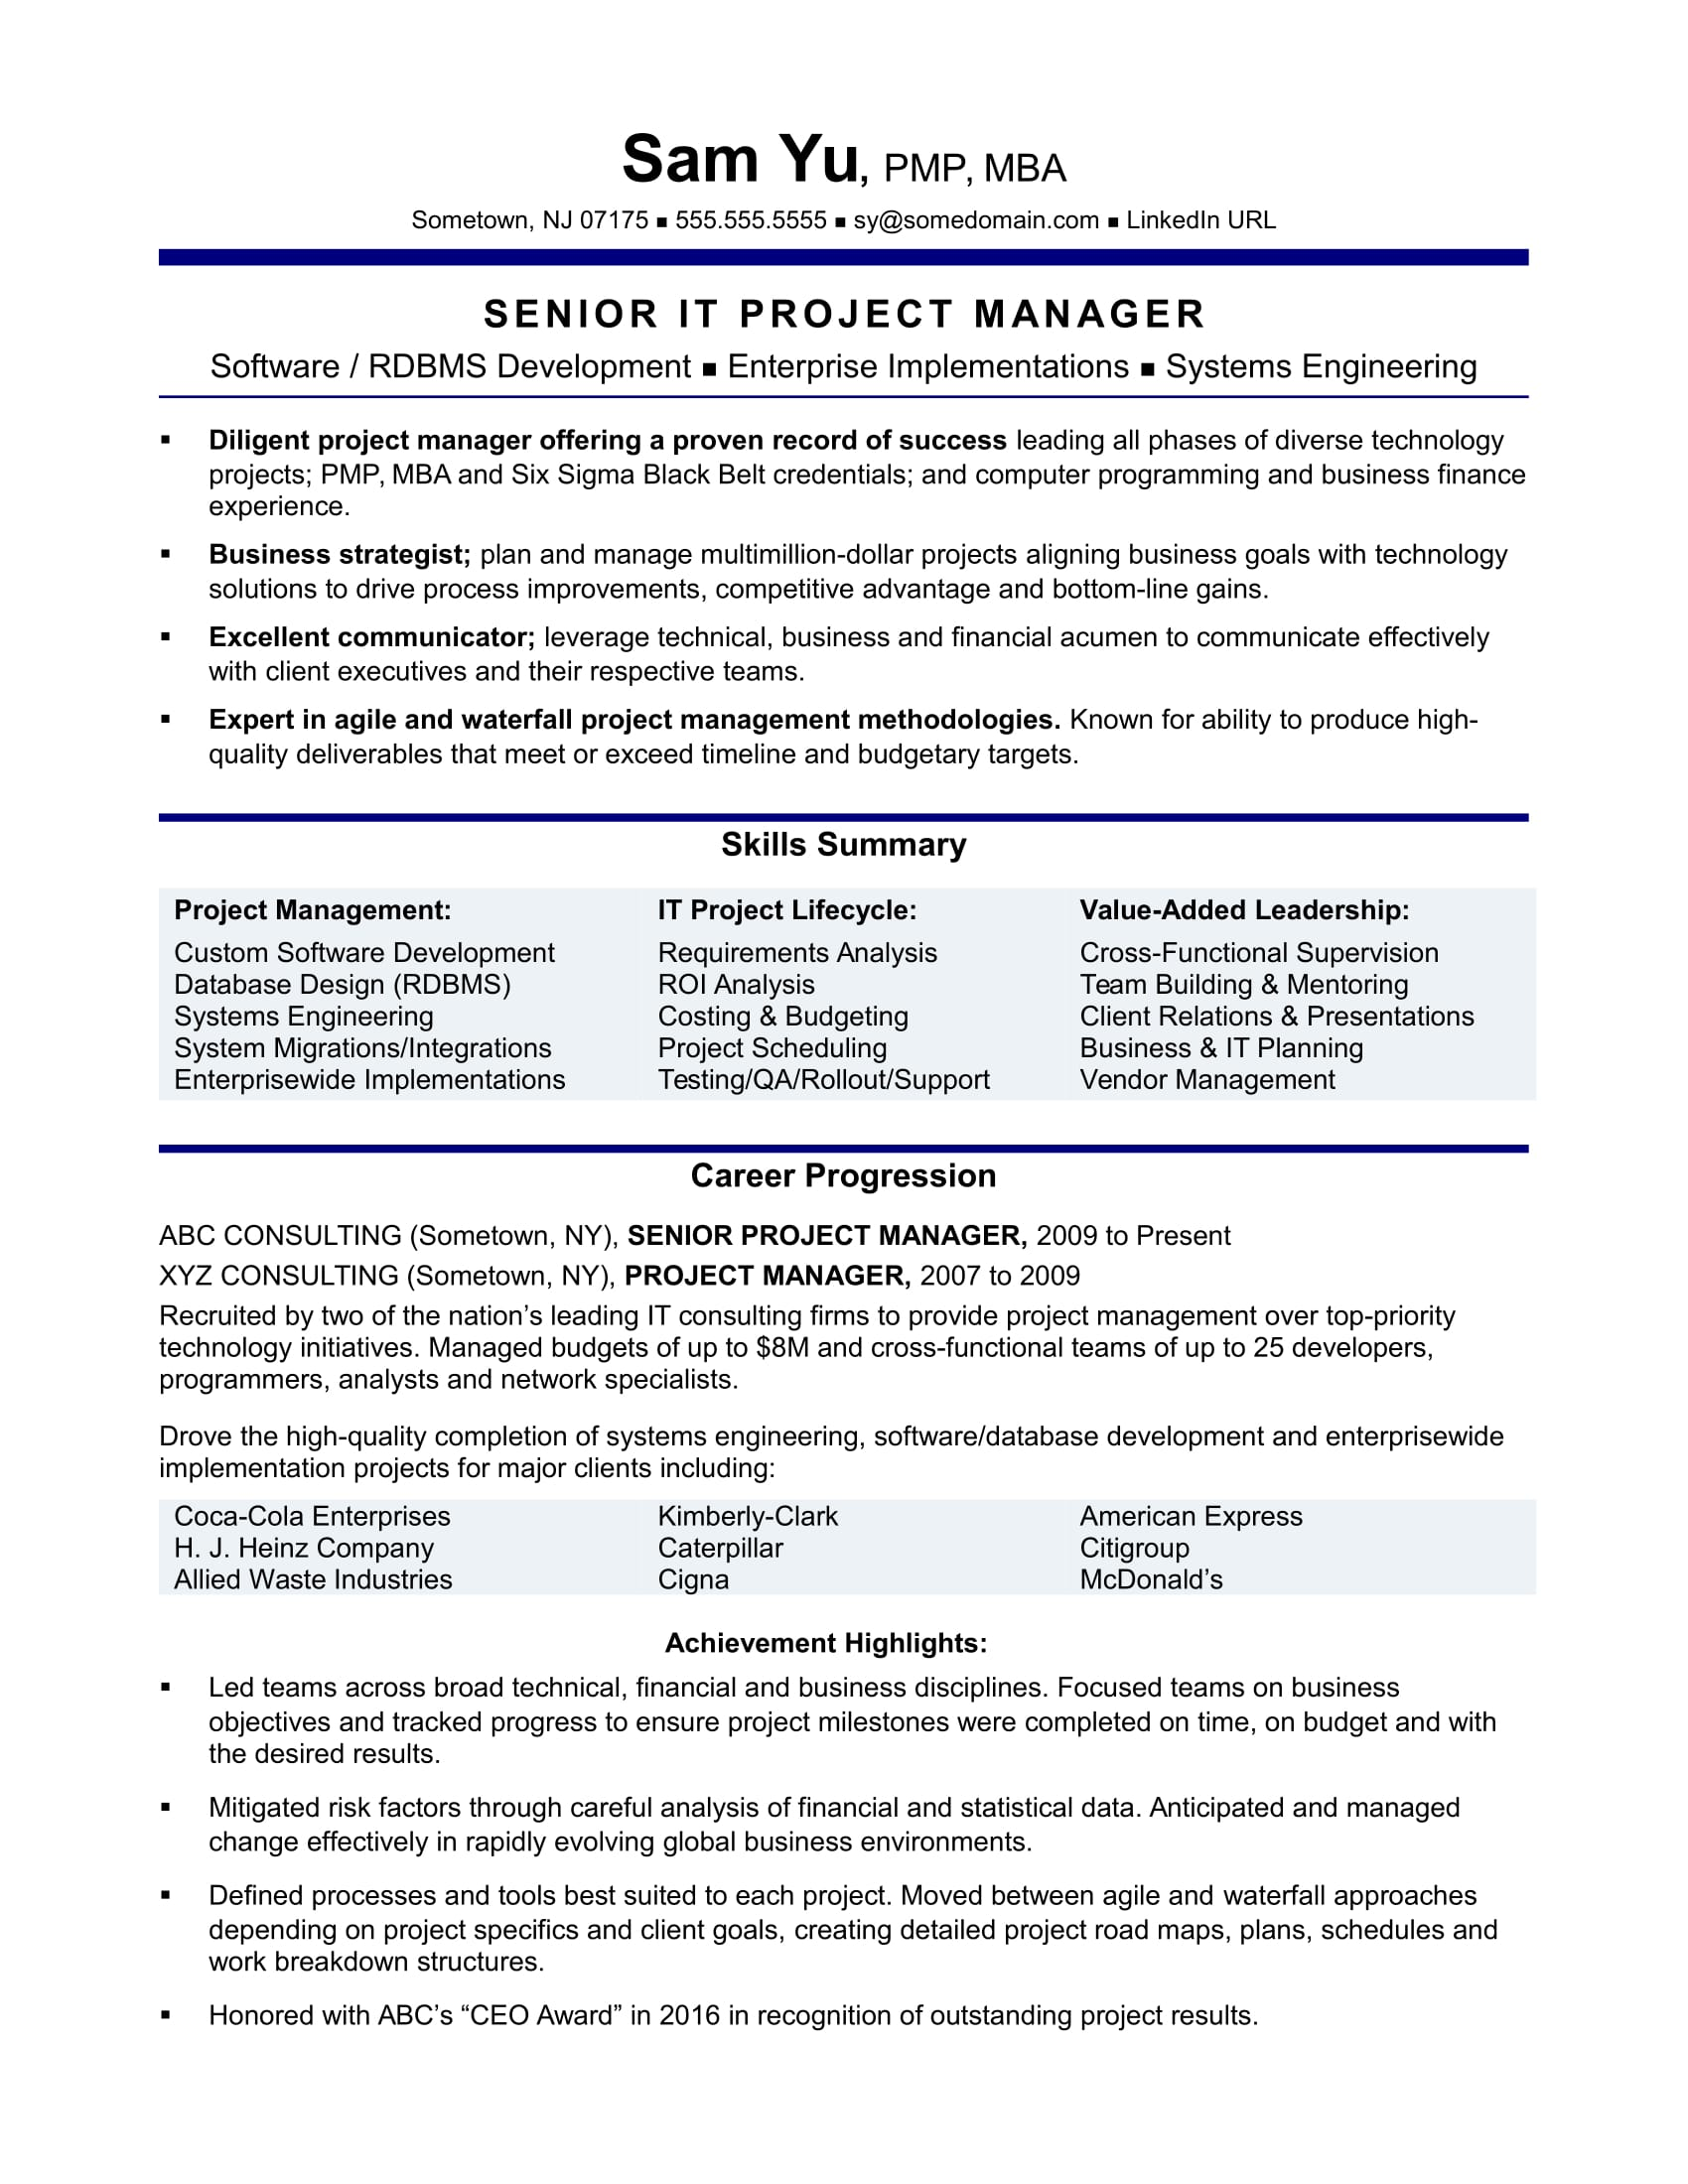 Experienced IT Project Manager Resume Sample  Content Manager Resume